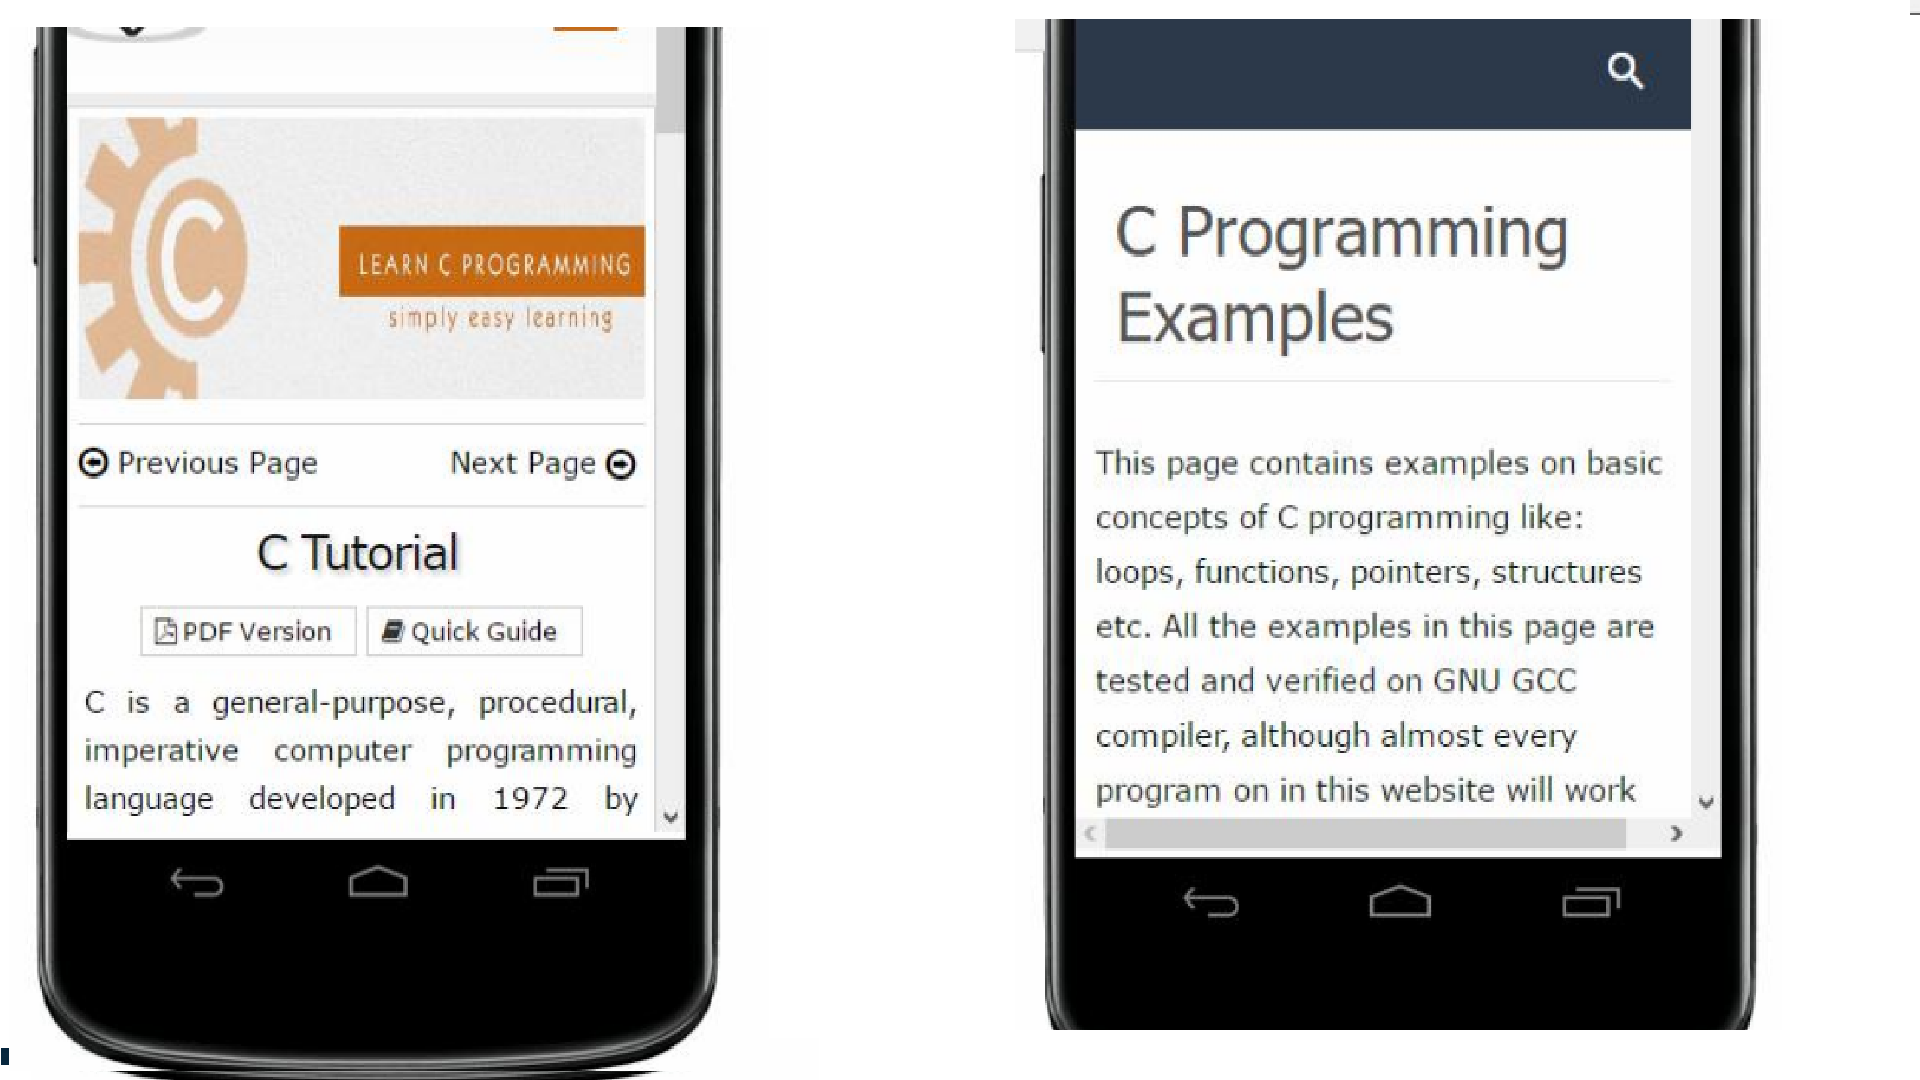 Amazon com: C Programming Examples Programming: Appstore for Android